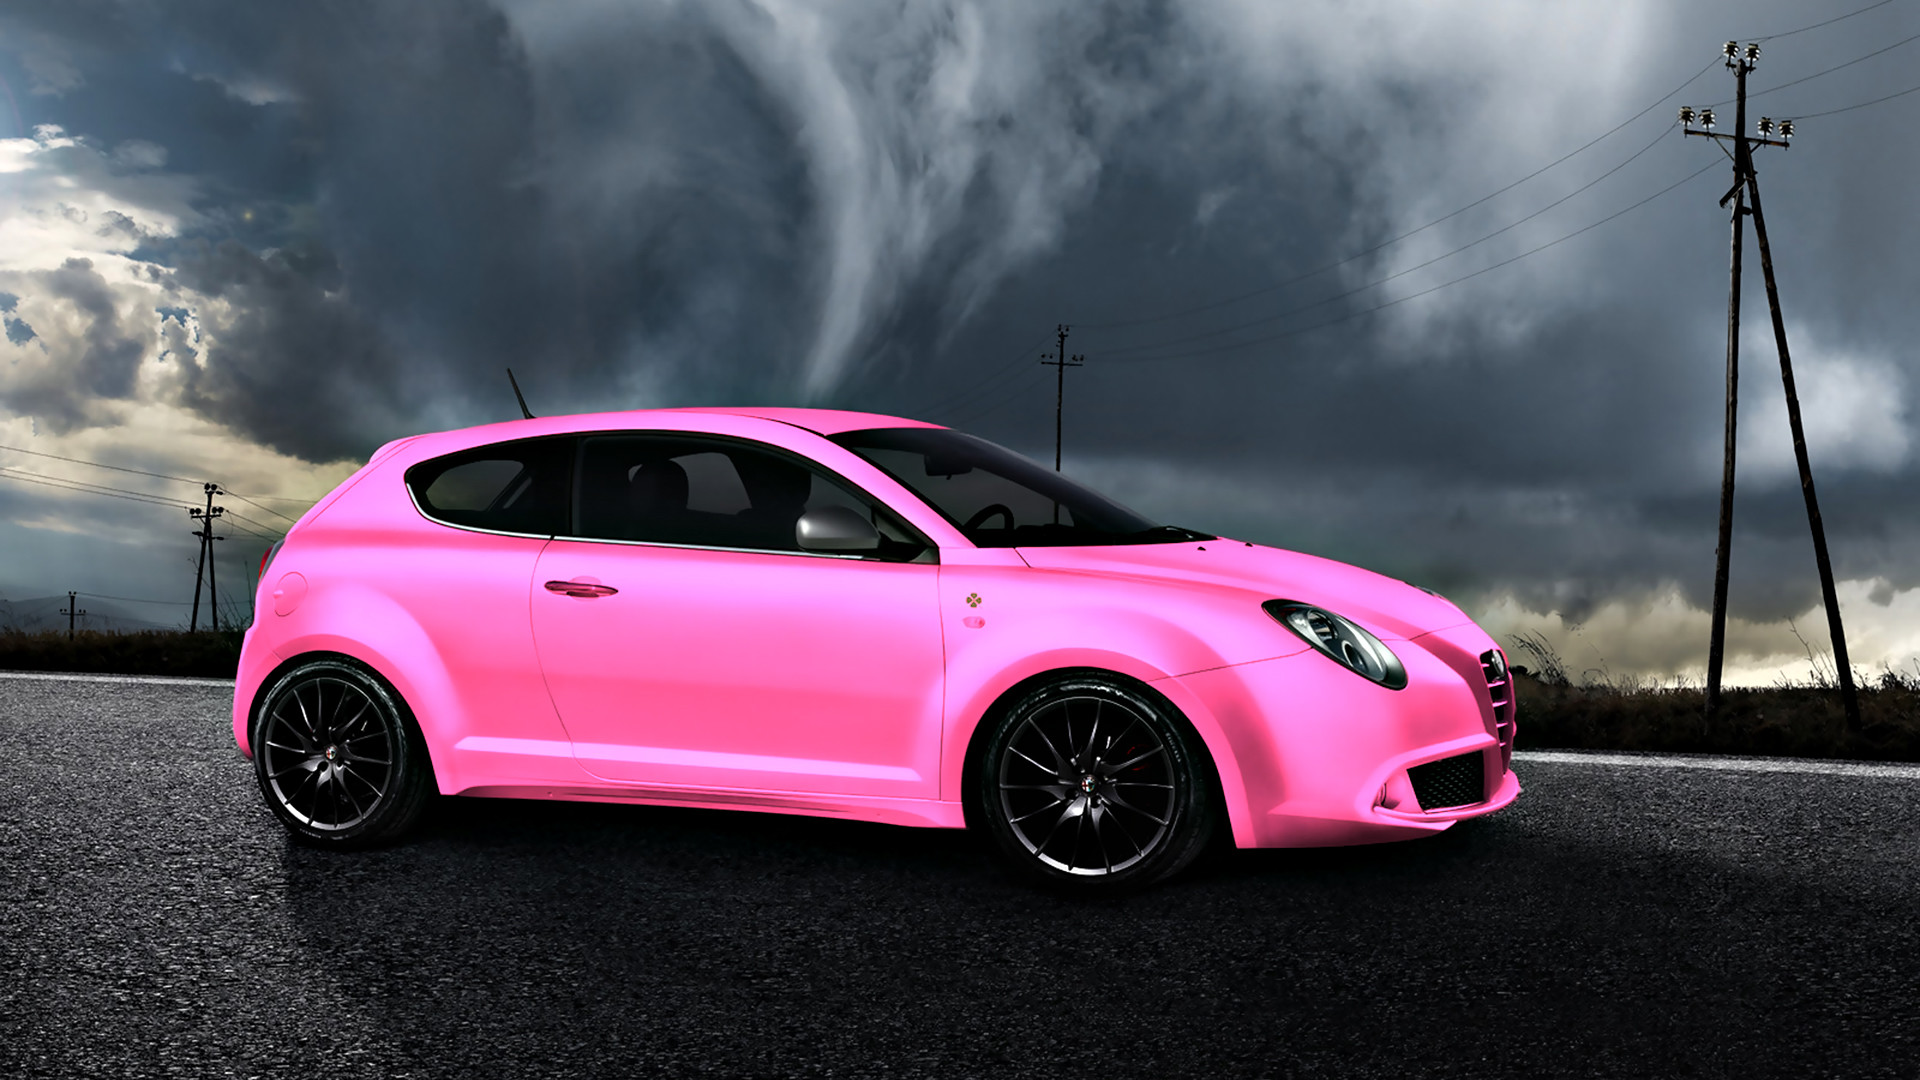 Awesome 1920x1080 BMW E92 M3 Super Abstract Car 2014 Pink .